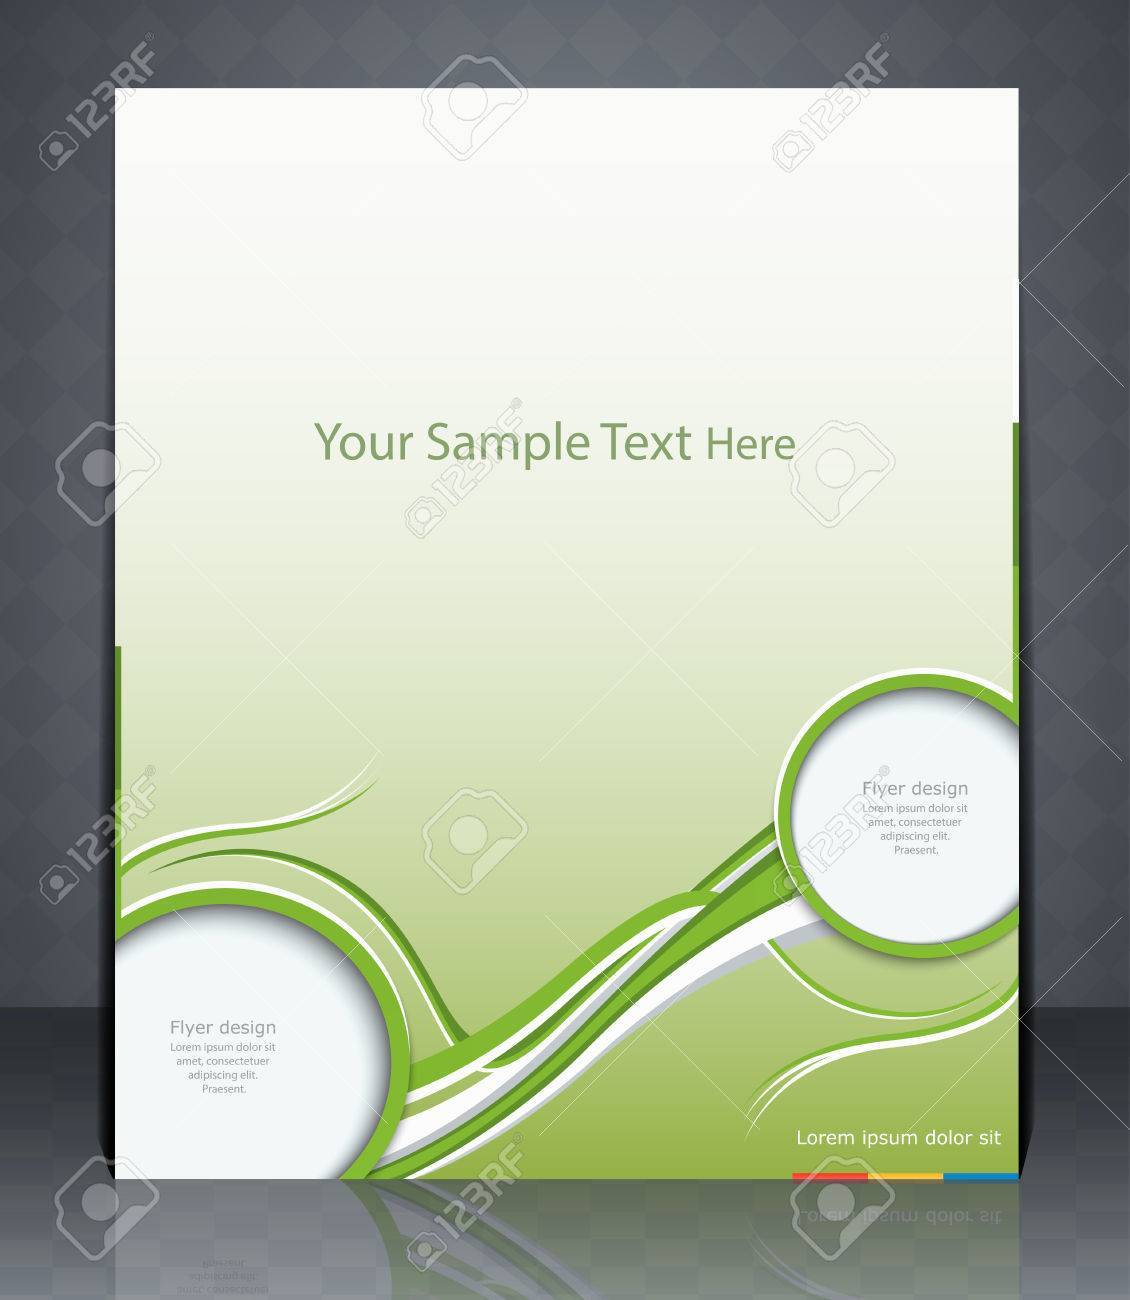 layout flyer magazine cover or corporate design template vector layout flyer magazine cover or corporate design template advertisement in green color